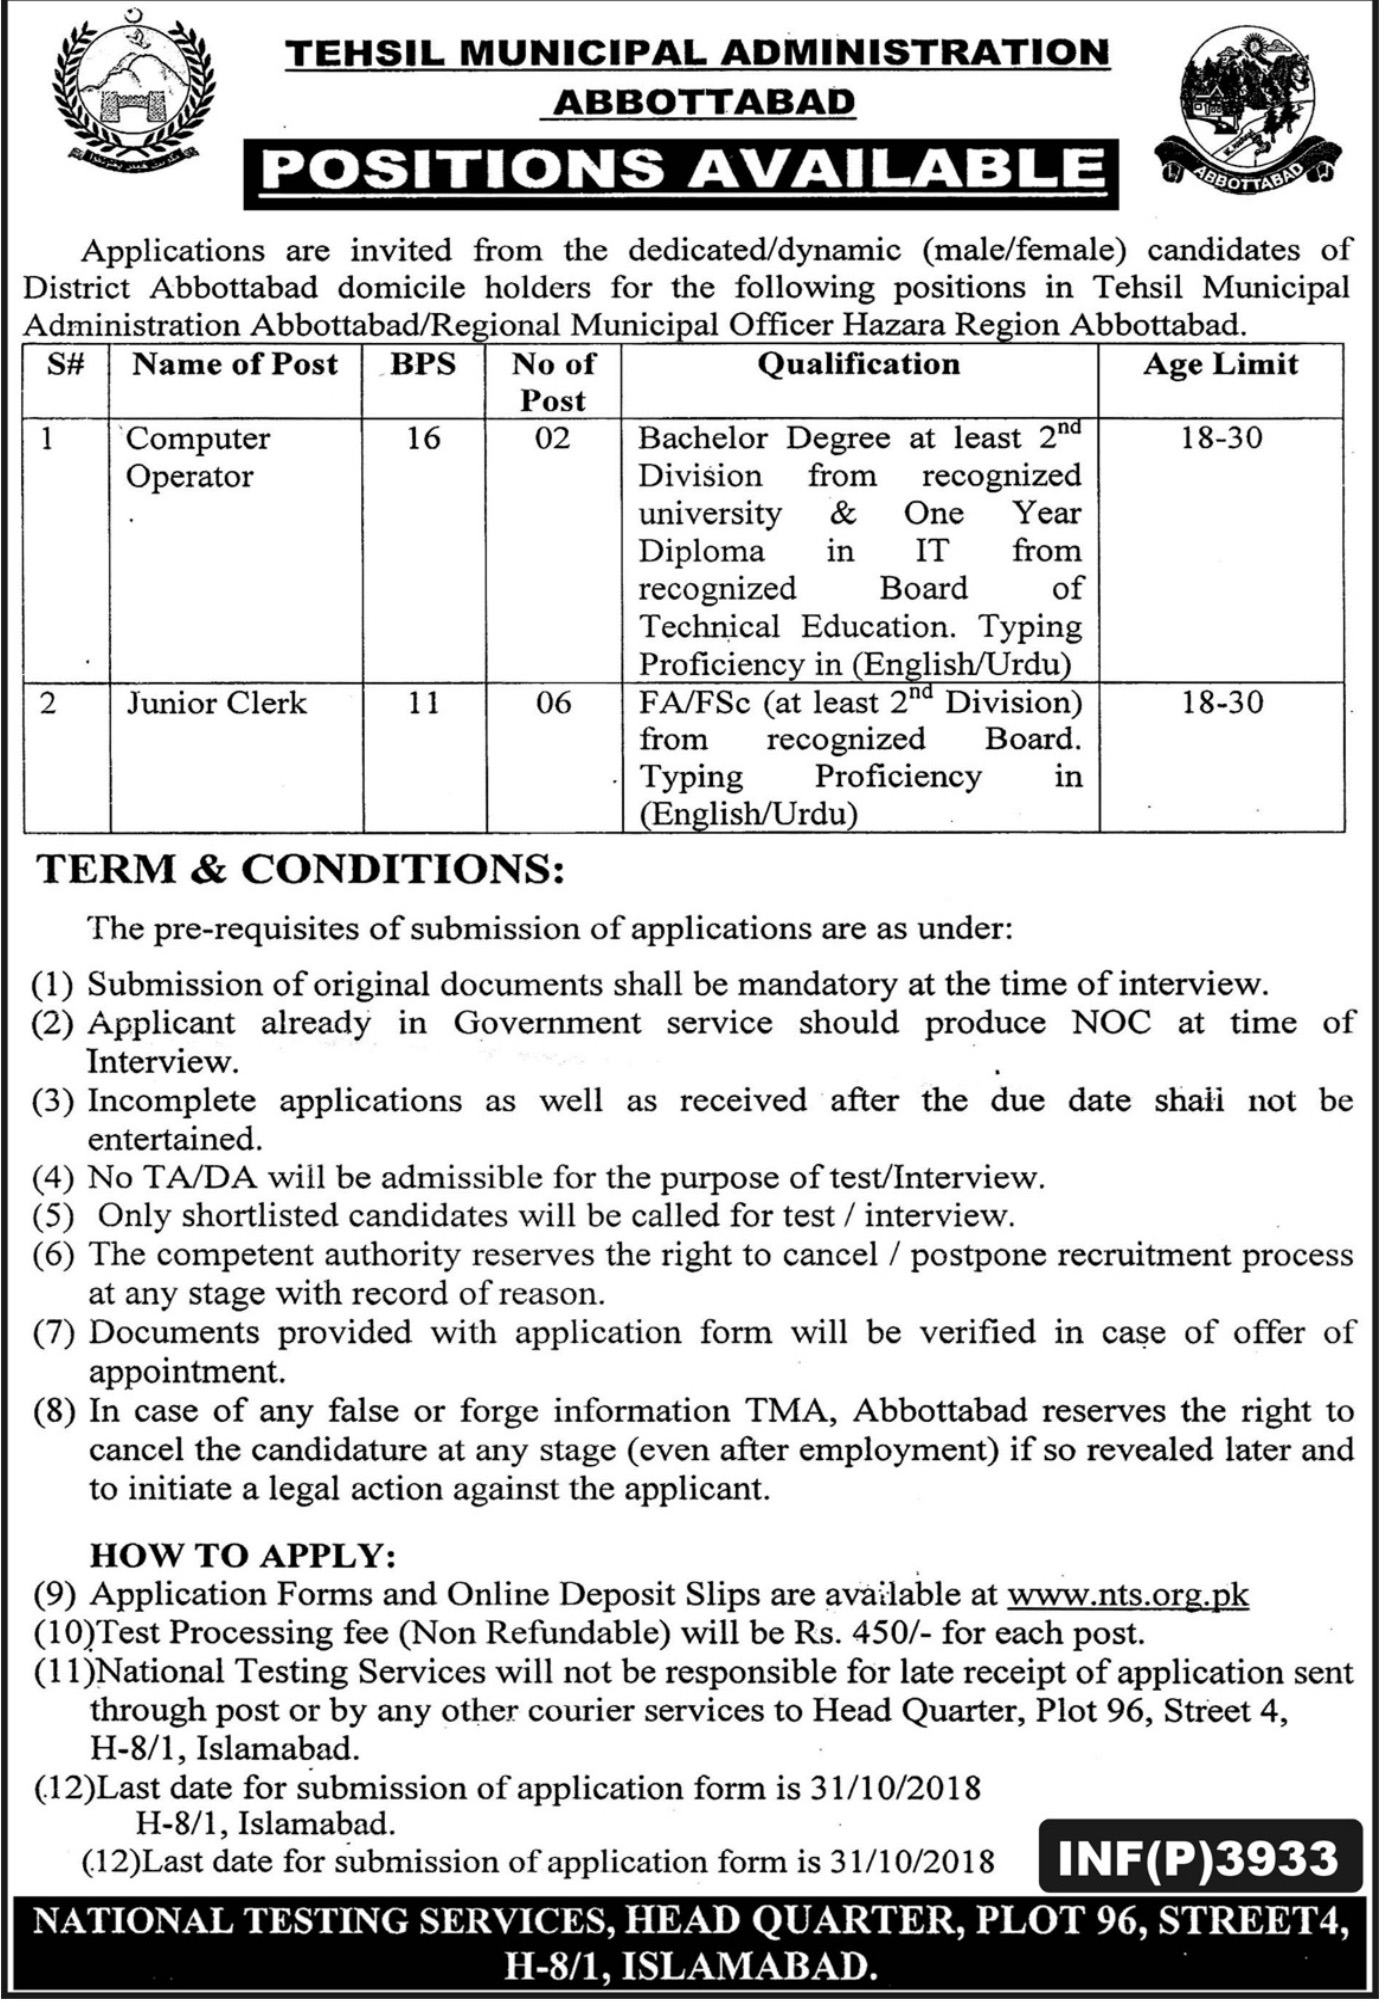 Tehsil Municipal Administration NTS Jobs 2018 Application Form Download